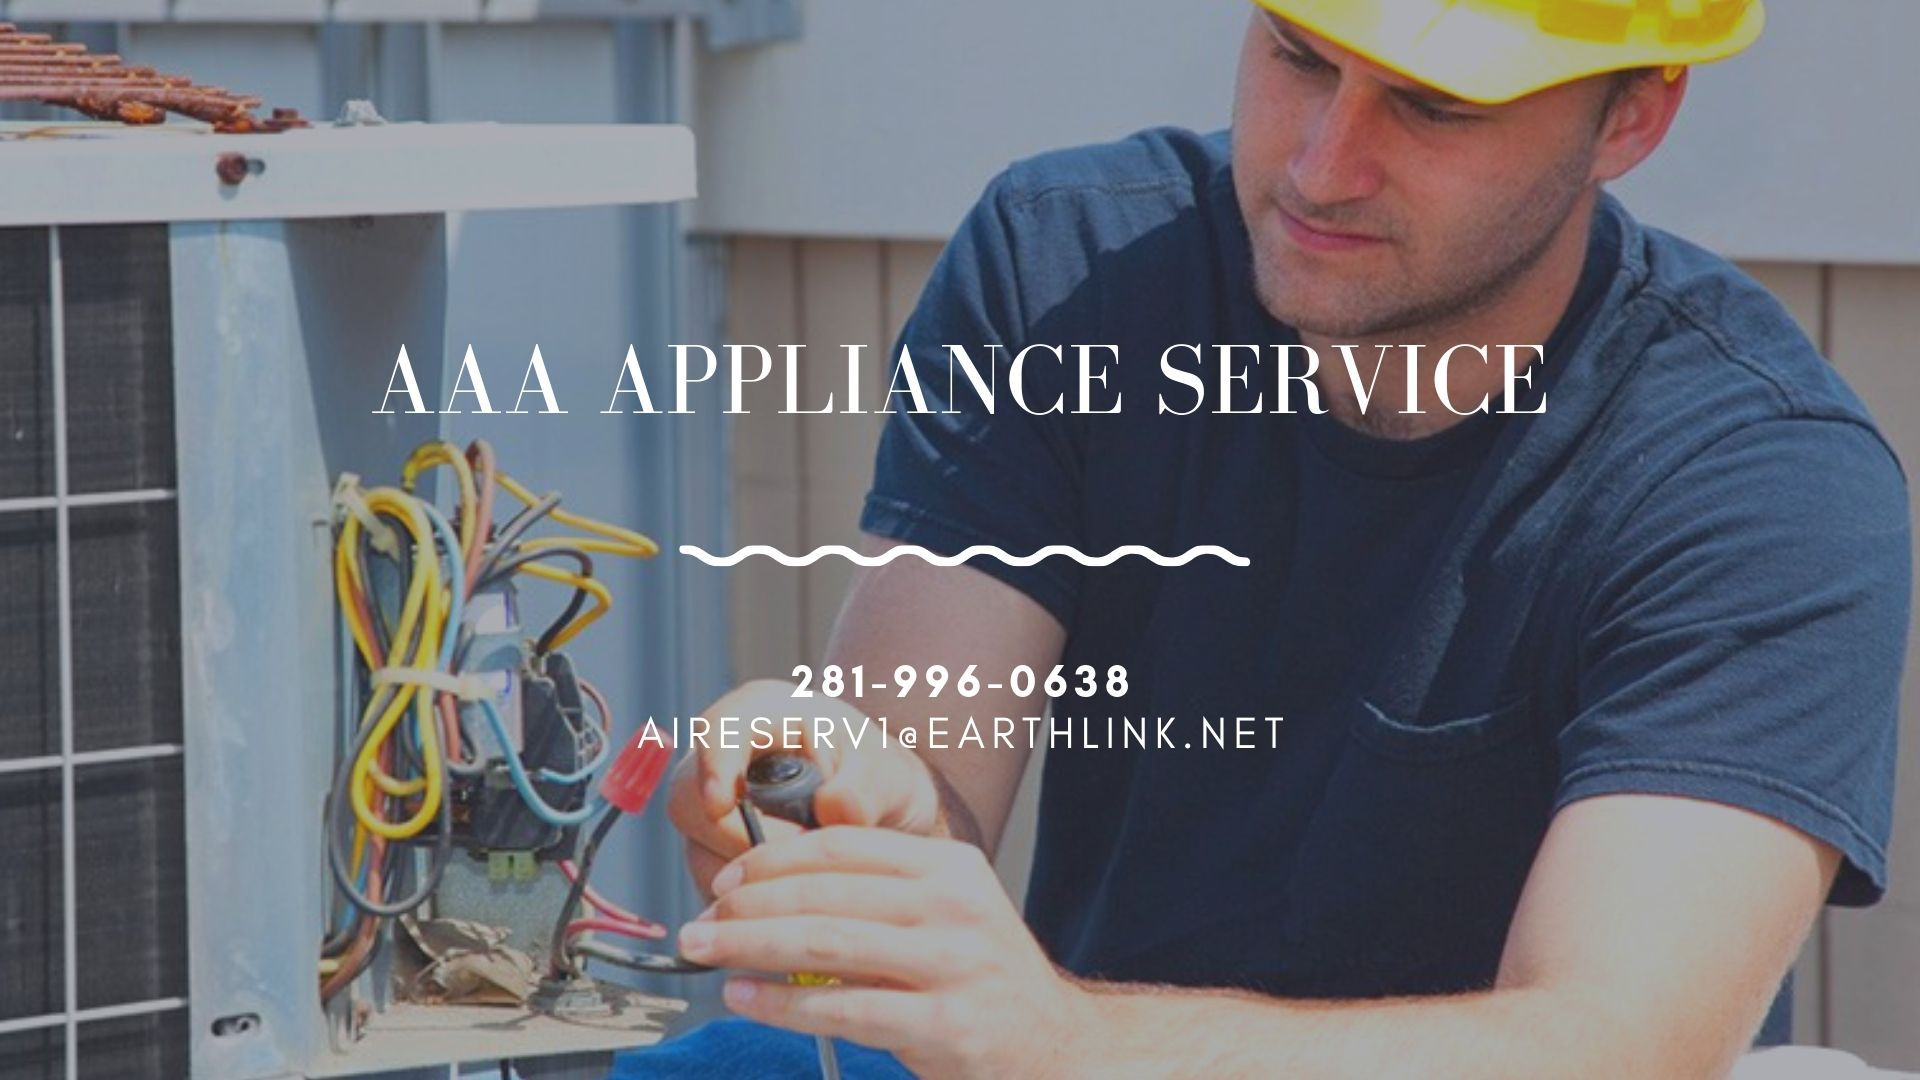 AAA Appliance Serivce is dedicated to providing the best